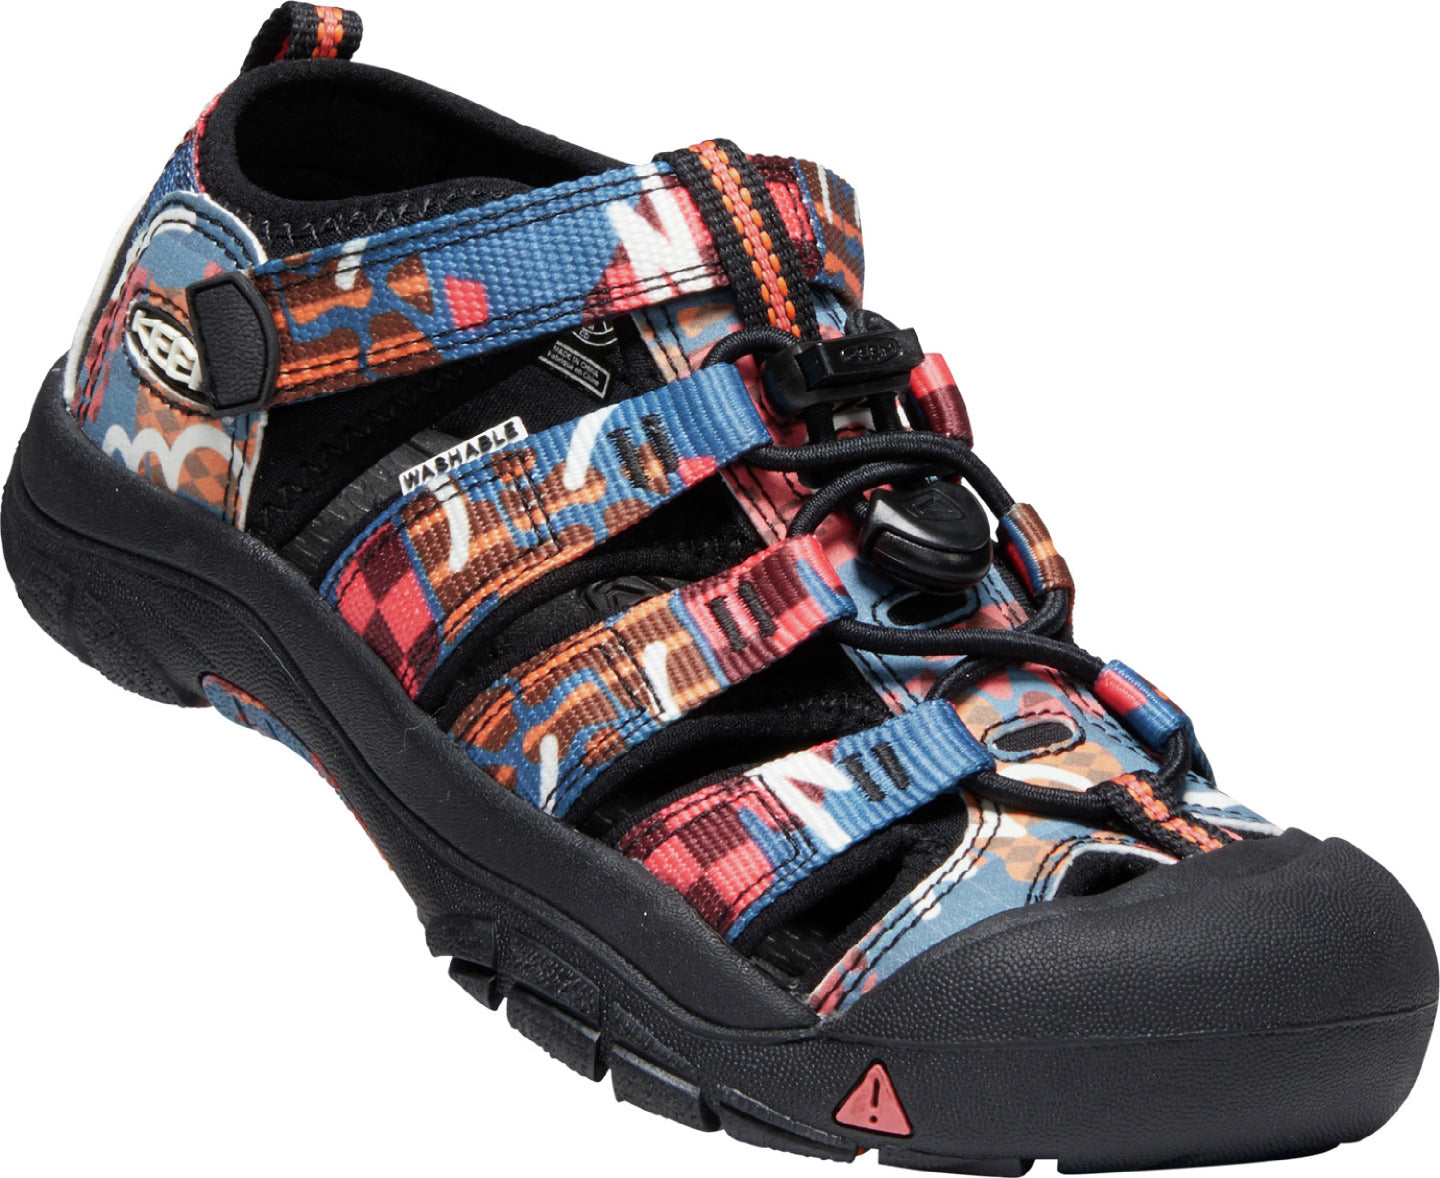 Youth KEEN Newport H2 Sandal in Black/Multi from the side